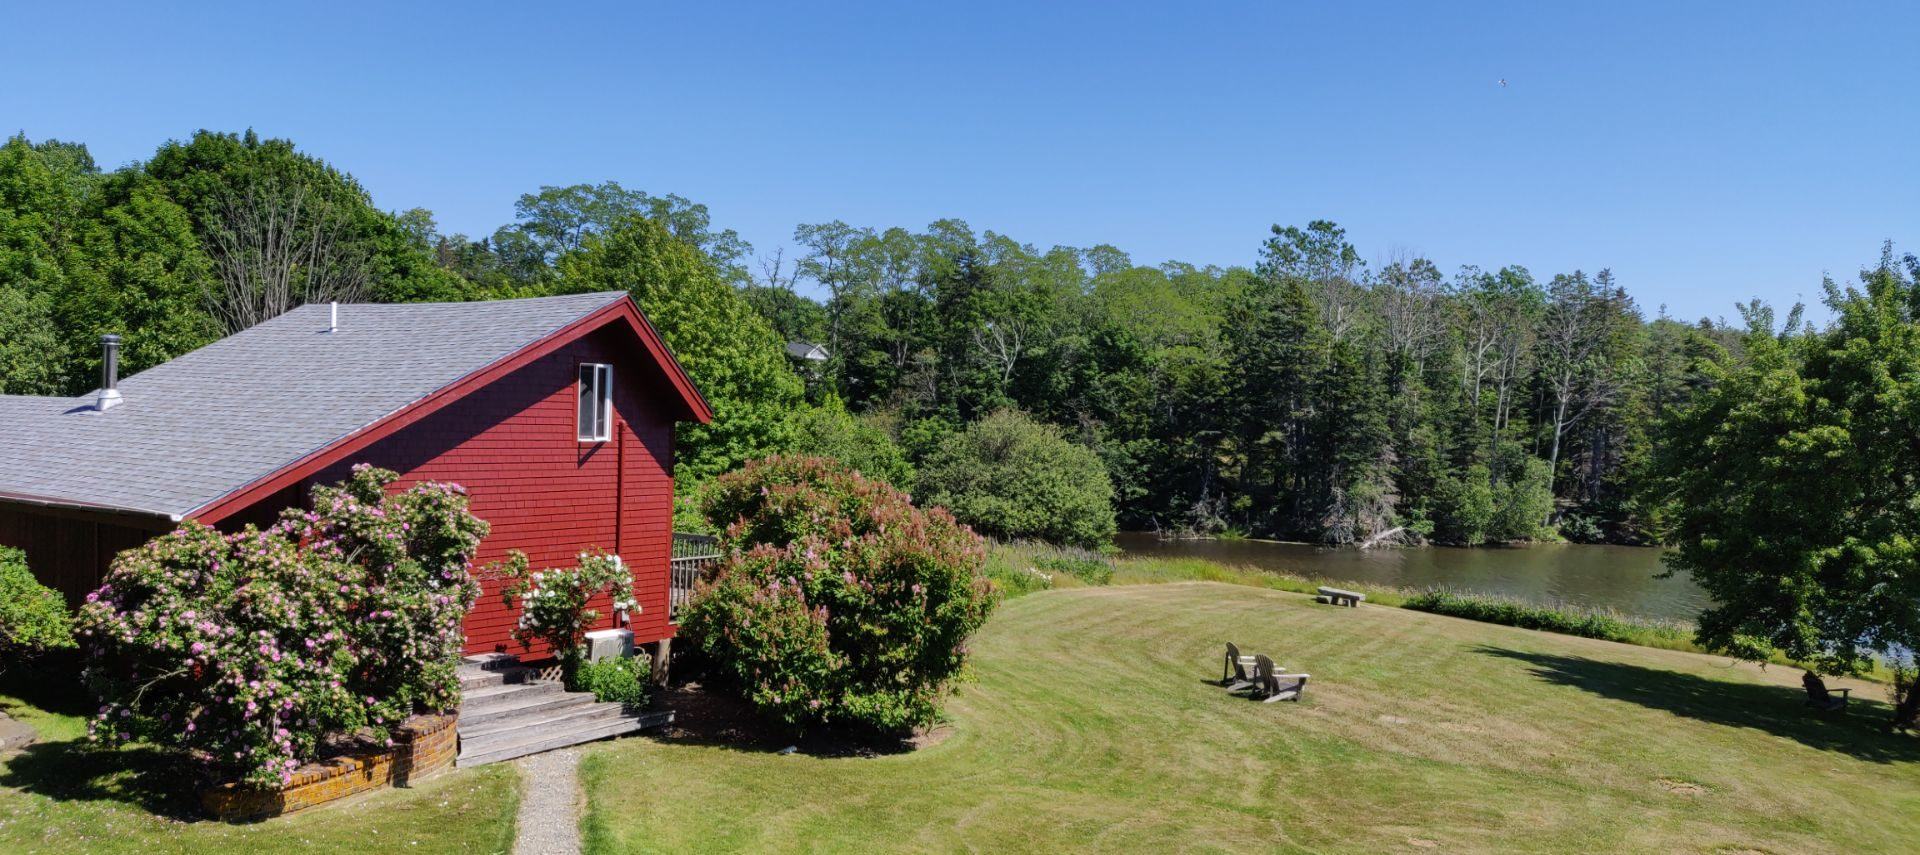 landscape view of red Rugosa Rose Cottage with lawn, lawn furniture, a stone bench, trees and pond